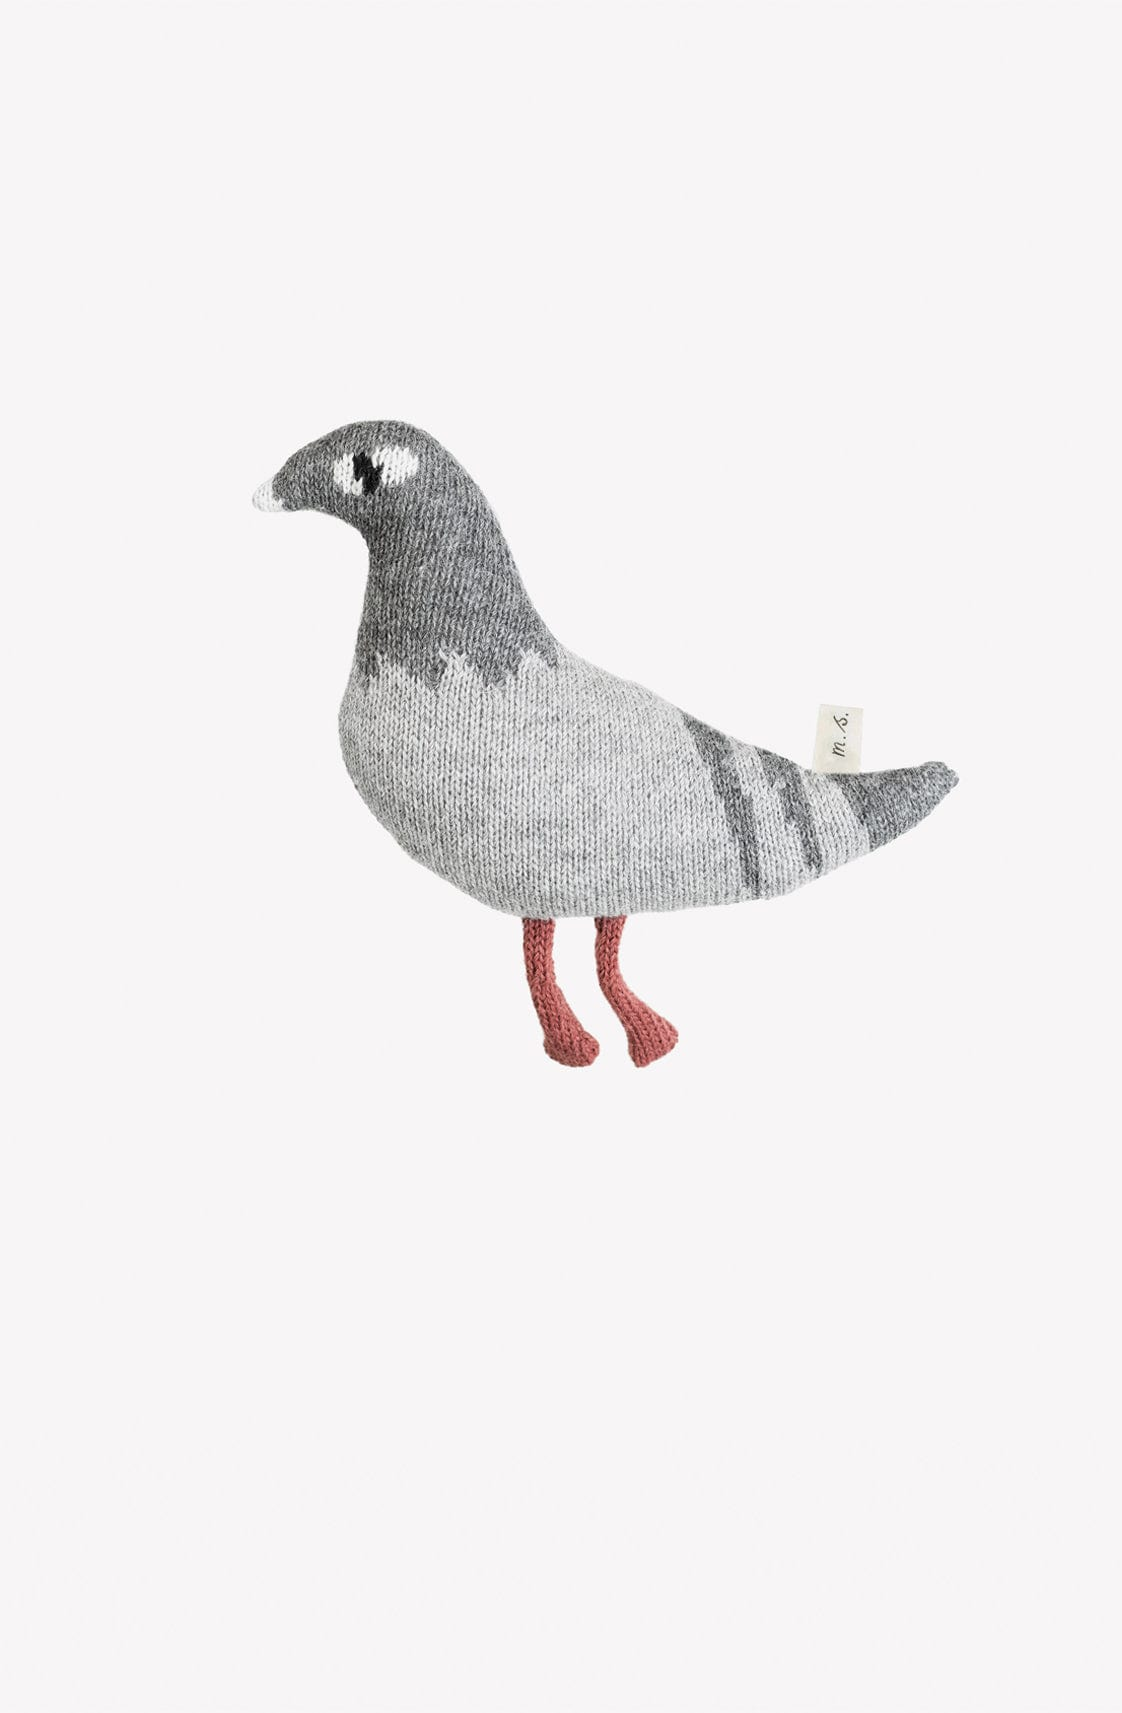 Main Sauvage Pigeon Knit Toy - Hello Little Birdie